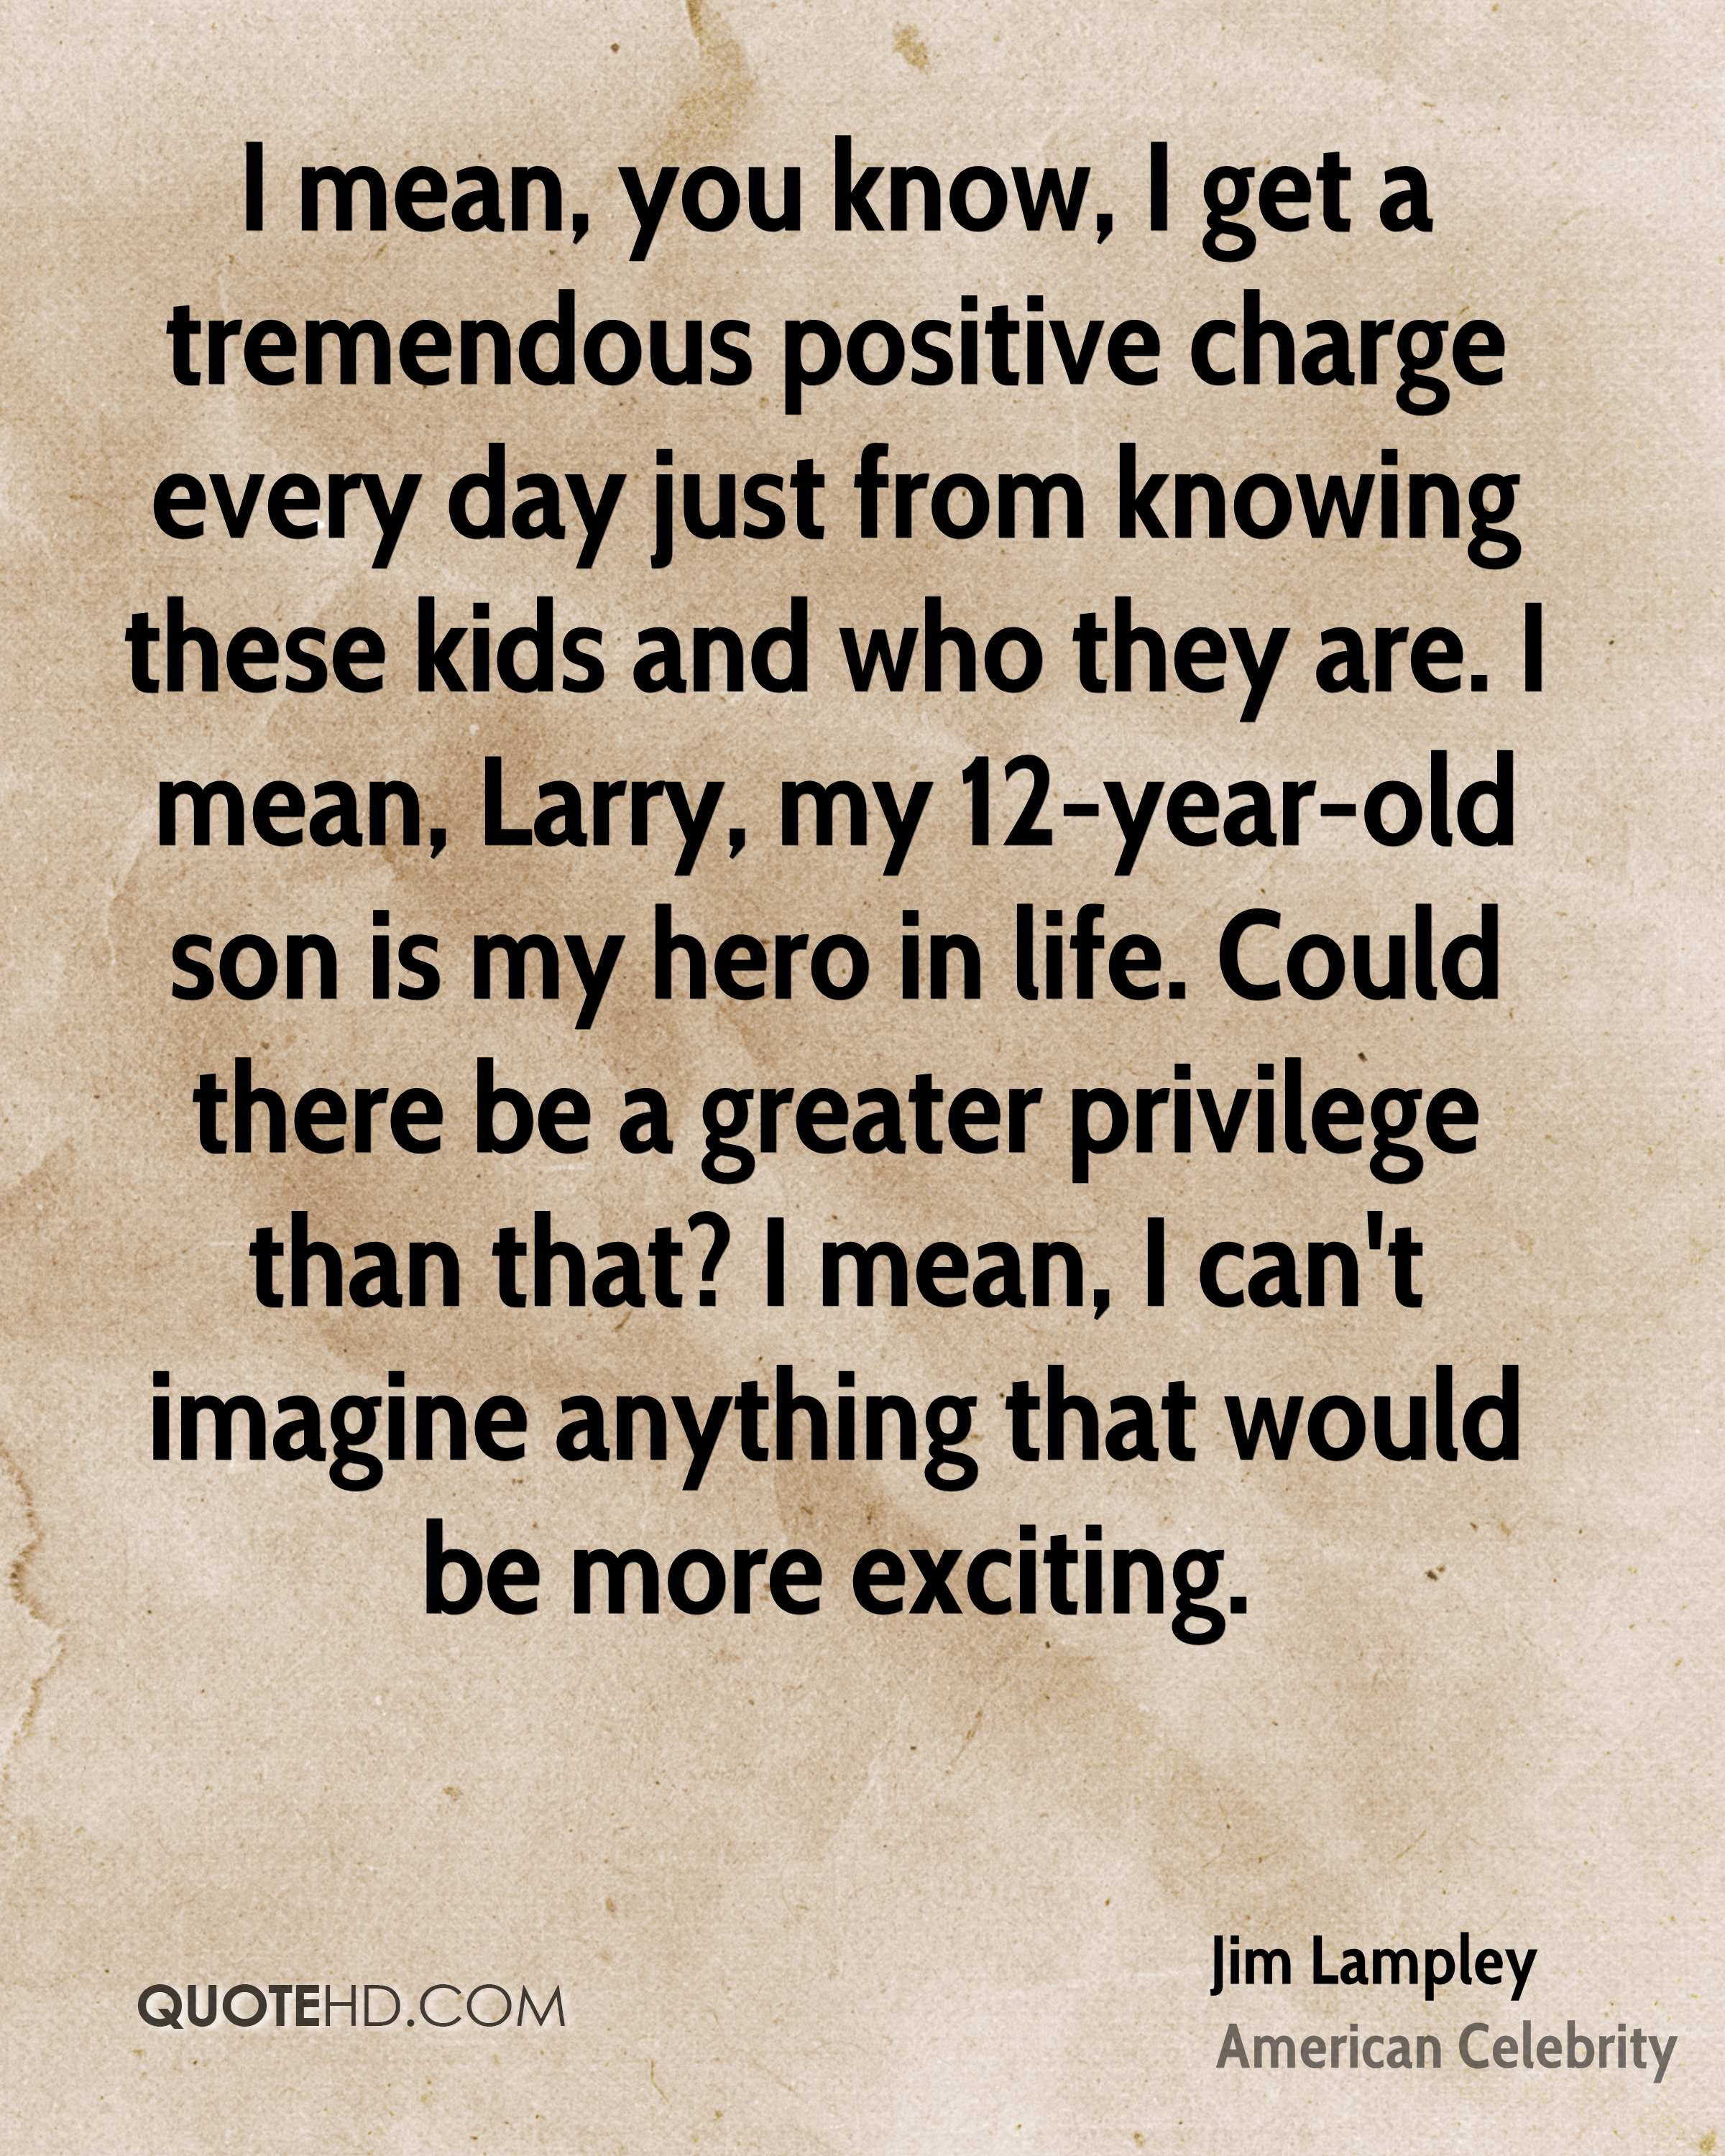 I mean, you know, I get a tremendous positive charge every day just from knowing these kids and who they are. I mean, Larry, my 12-year-old son is my hero in life. Could there be a greater privilege than that? I mean, I can't imagine anything that would be more exciting.